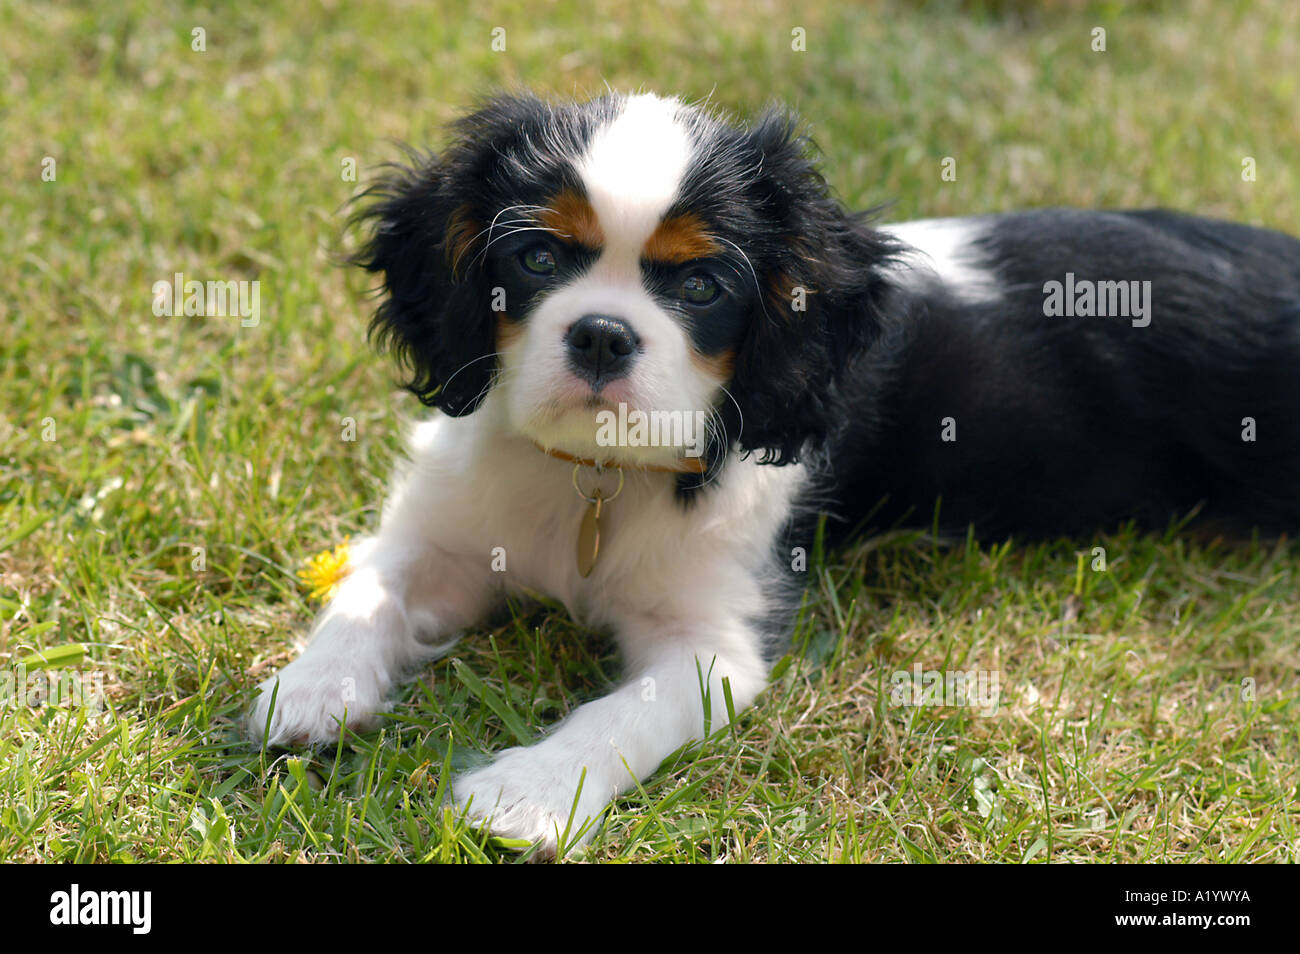 Tricolour Cavalier King Charles Spaniel Puppy 12 Weeks Old Stock Photo Alamy